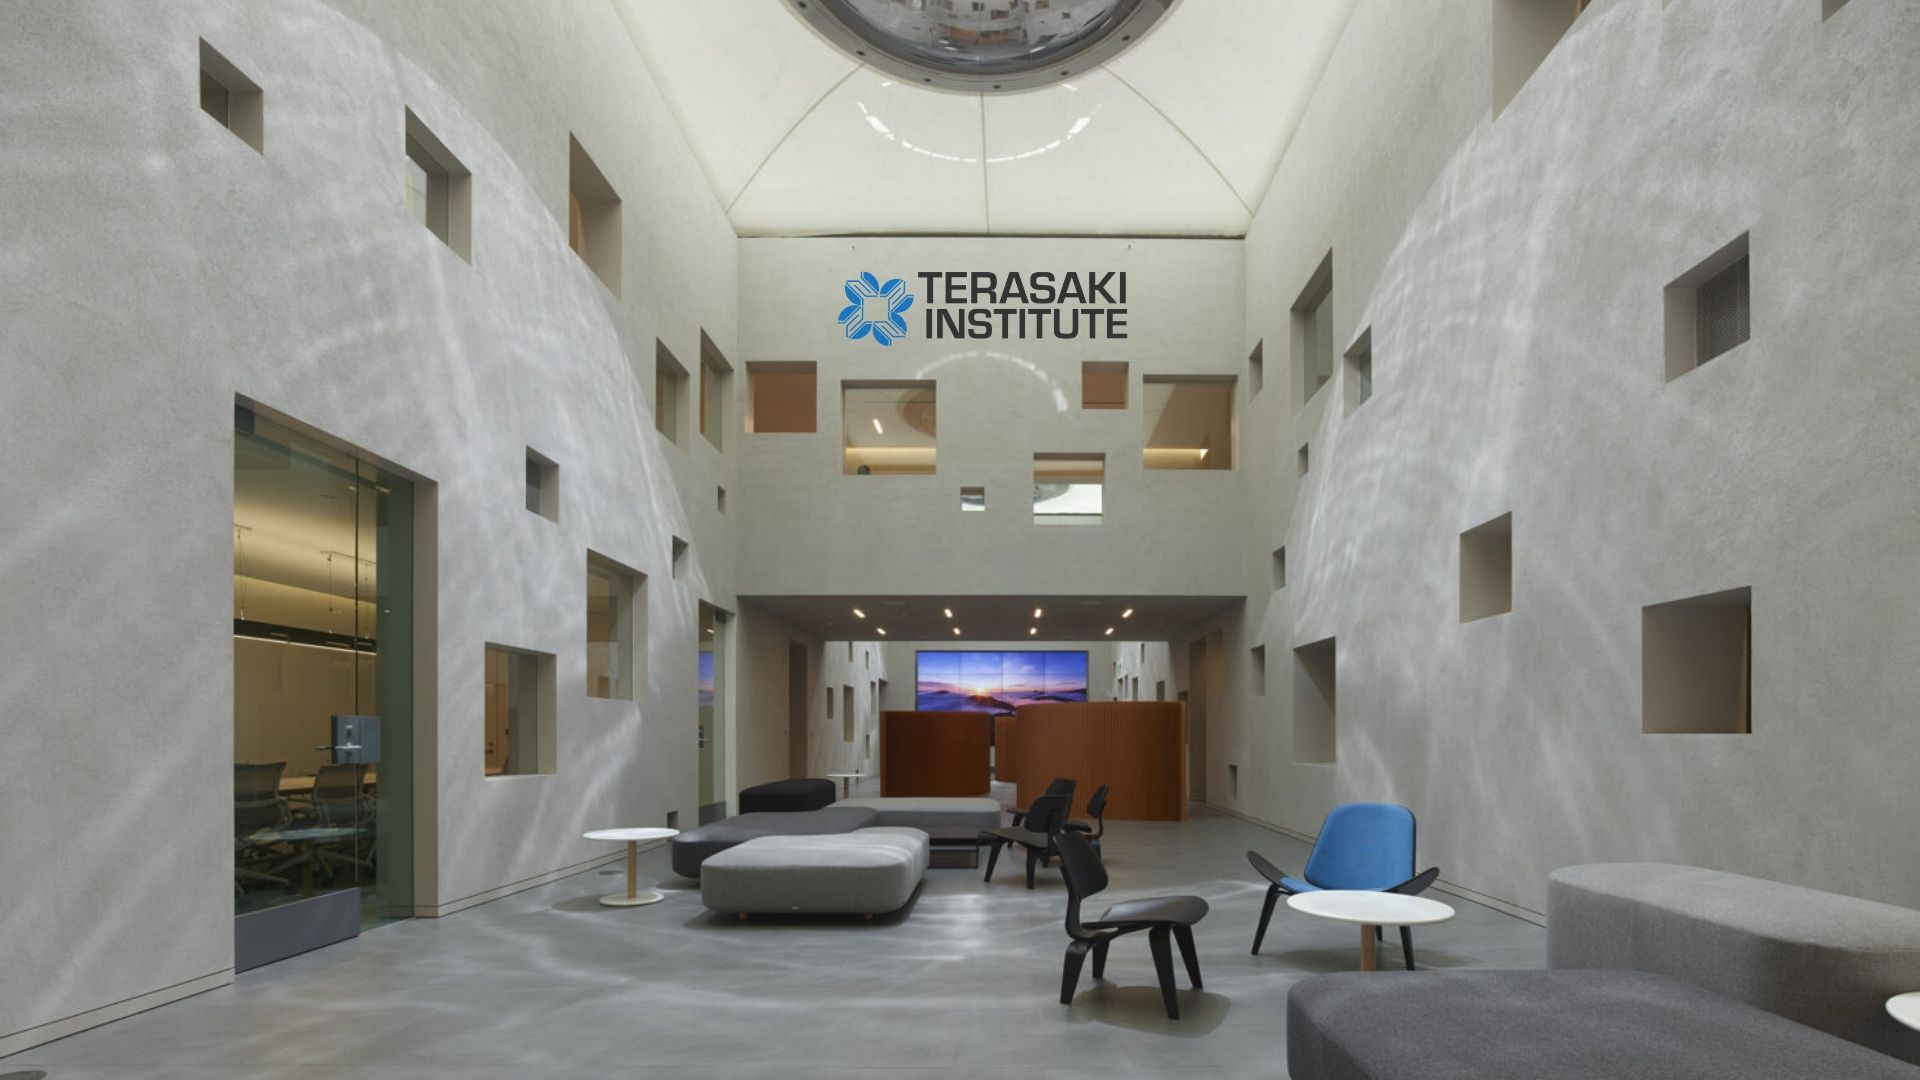 Terasaki Institute - Modern office area